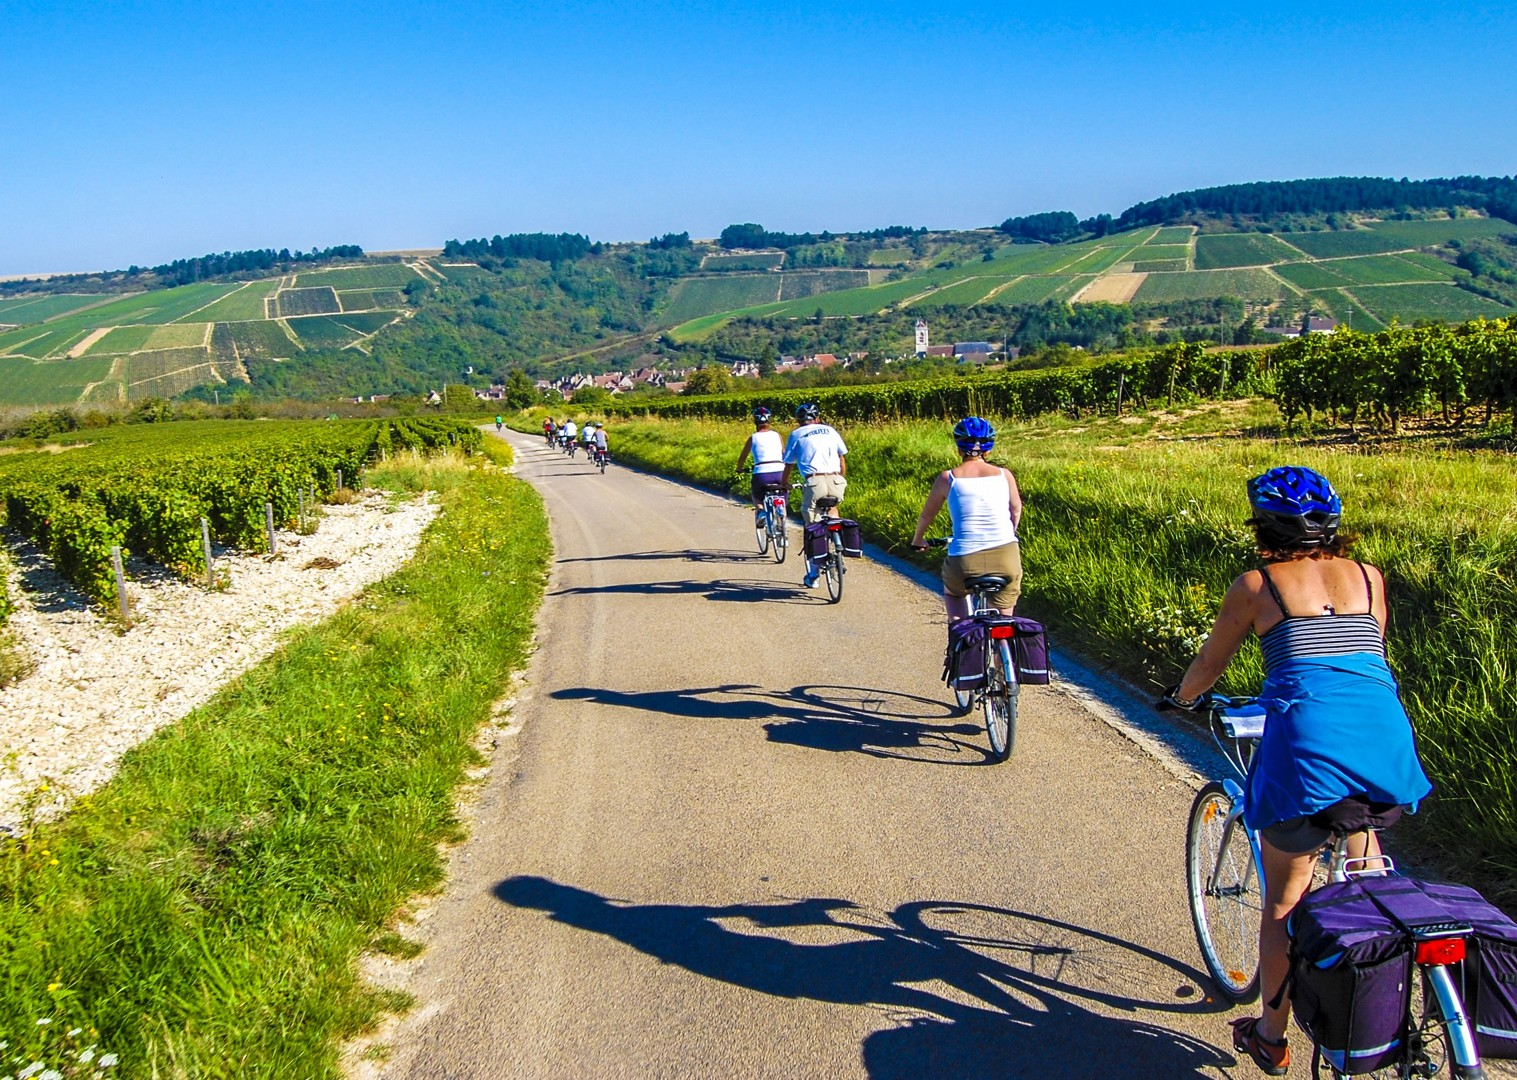 cycle-with-friends-and-family-in-france-self-guided-along-canals-and caves.jpg - France - Burgundy - Caves and Canals - Self-Guided Leisure Cycling Holiday - Leisure Cycling